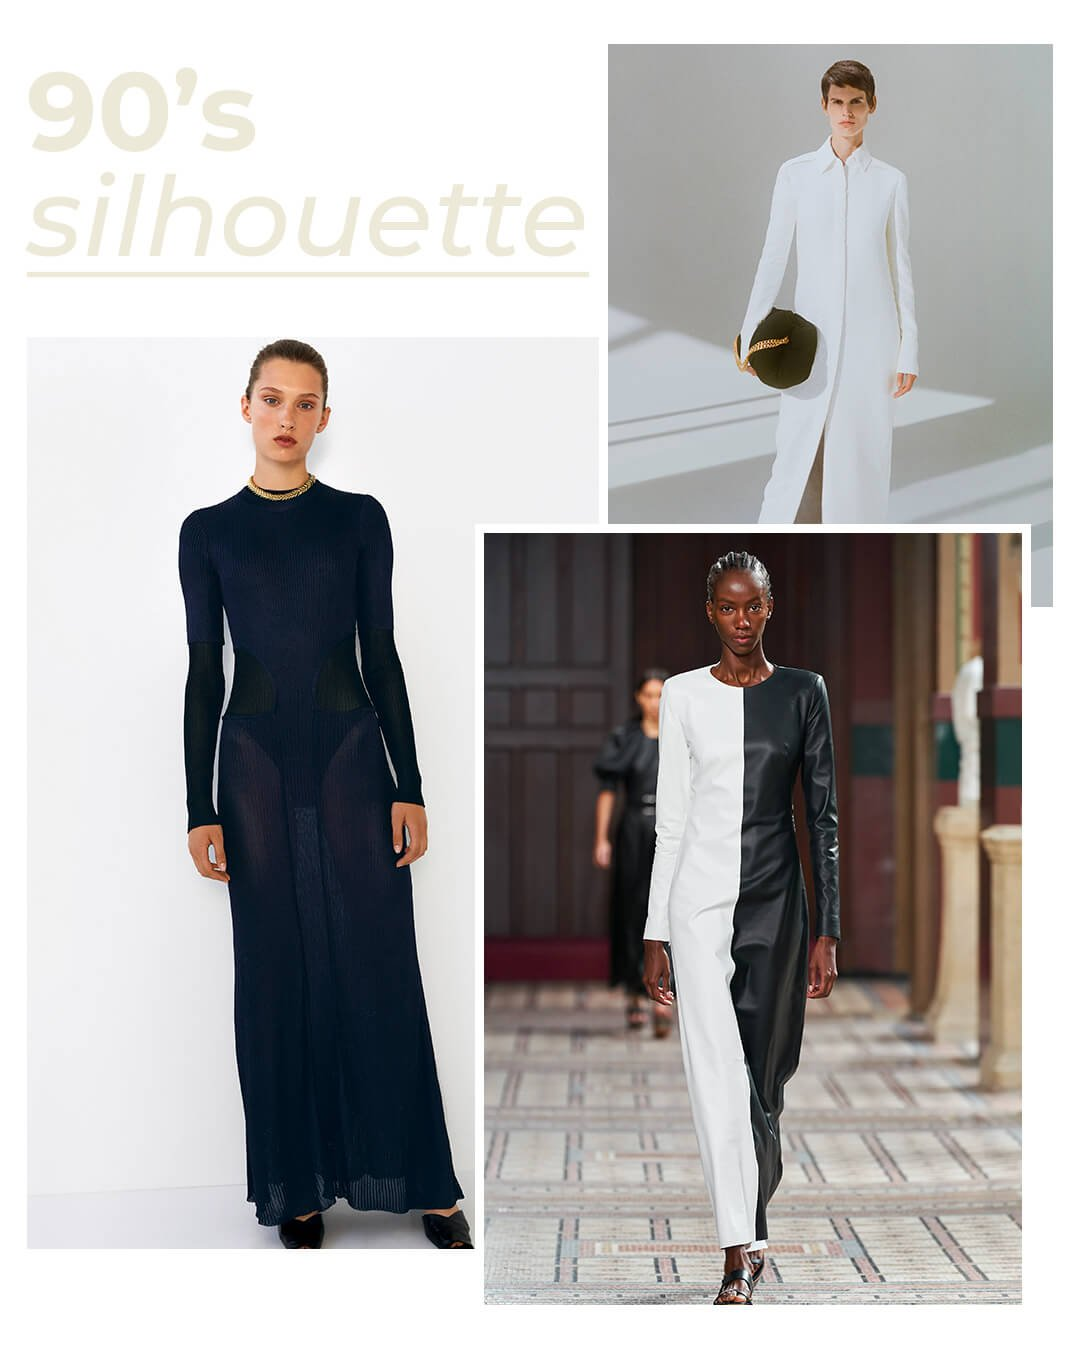 It girls - Silhueta - Anos 90 - Outono - Runaway - https://stealthelook.com.br